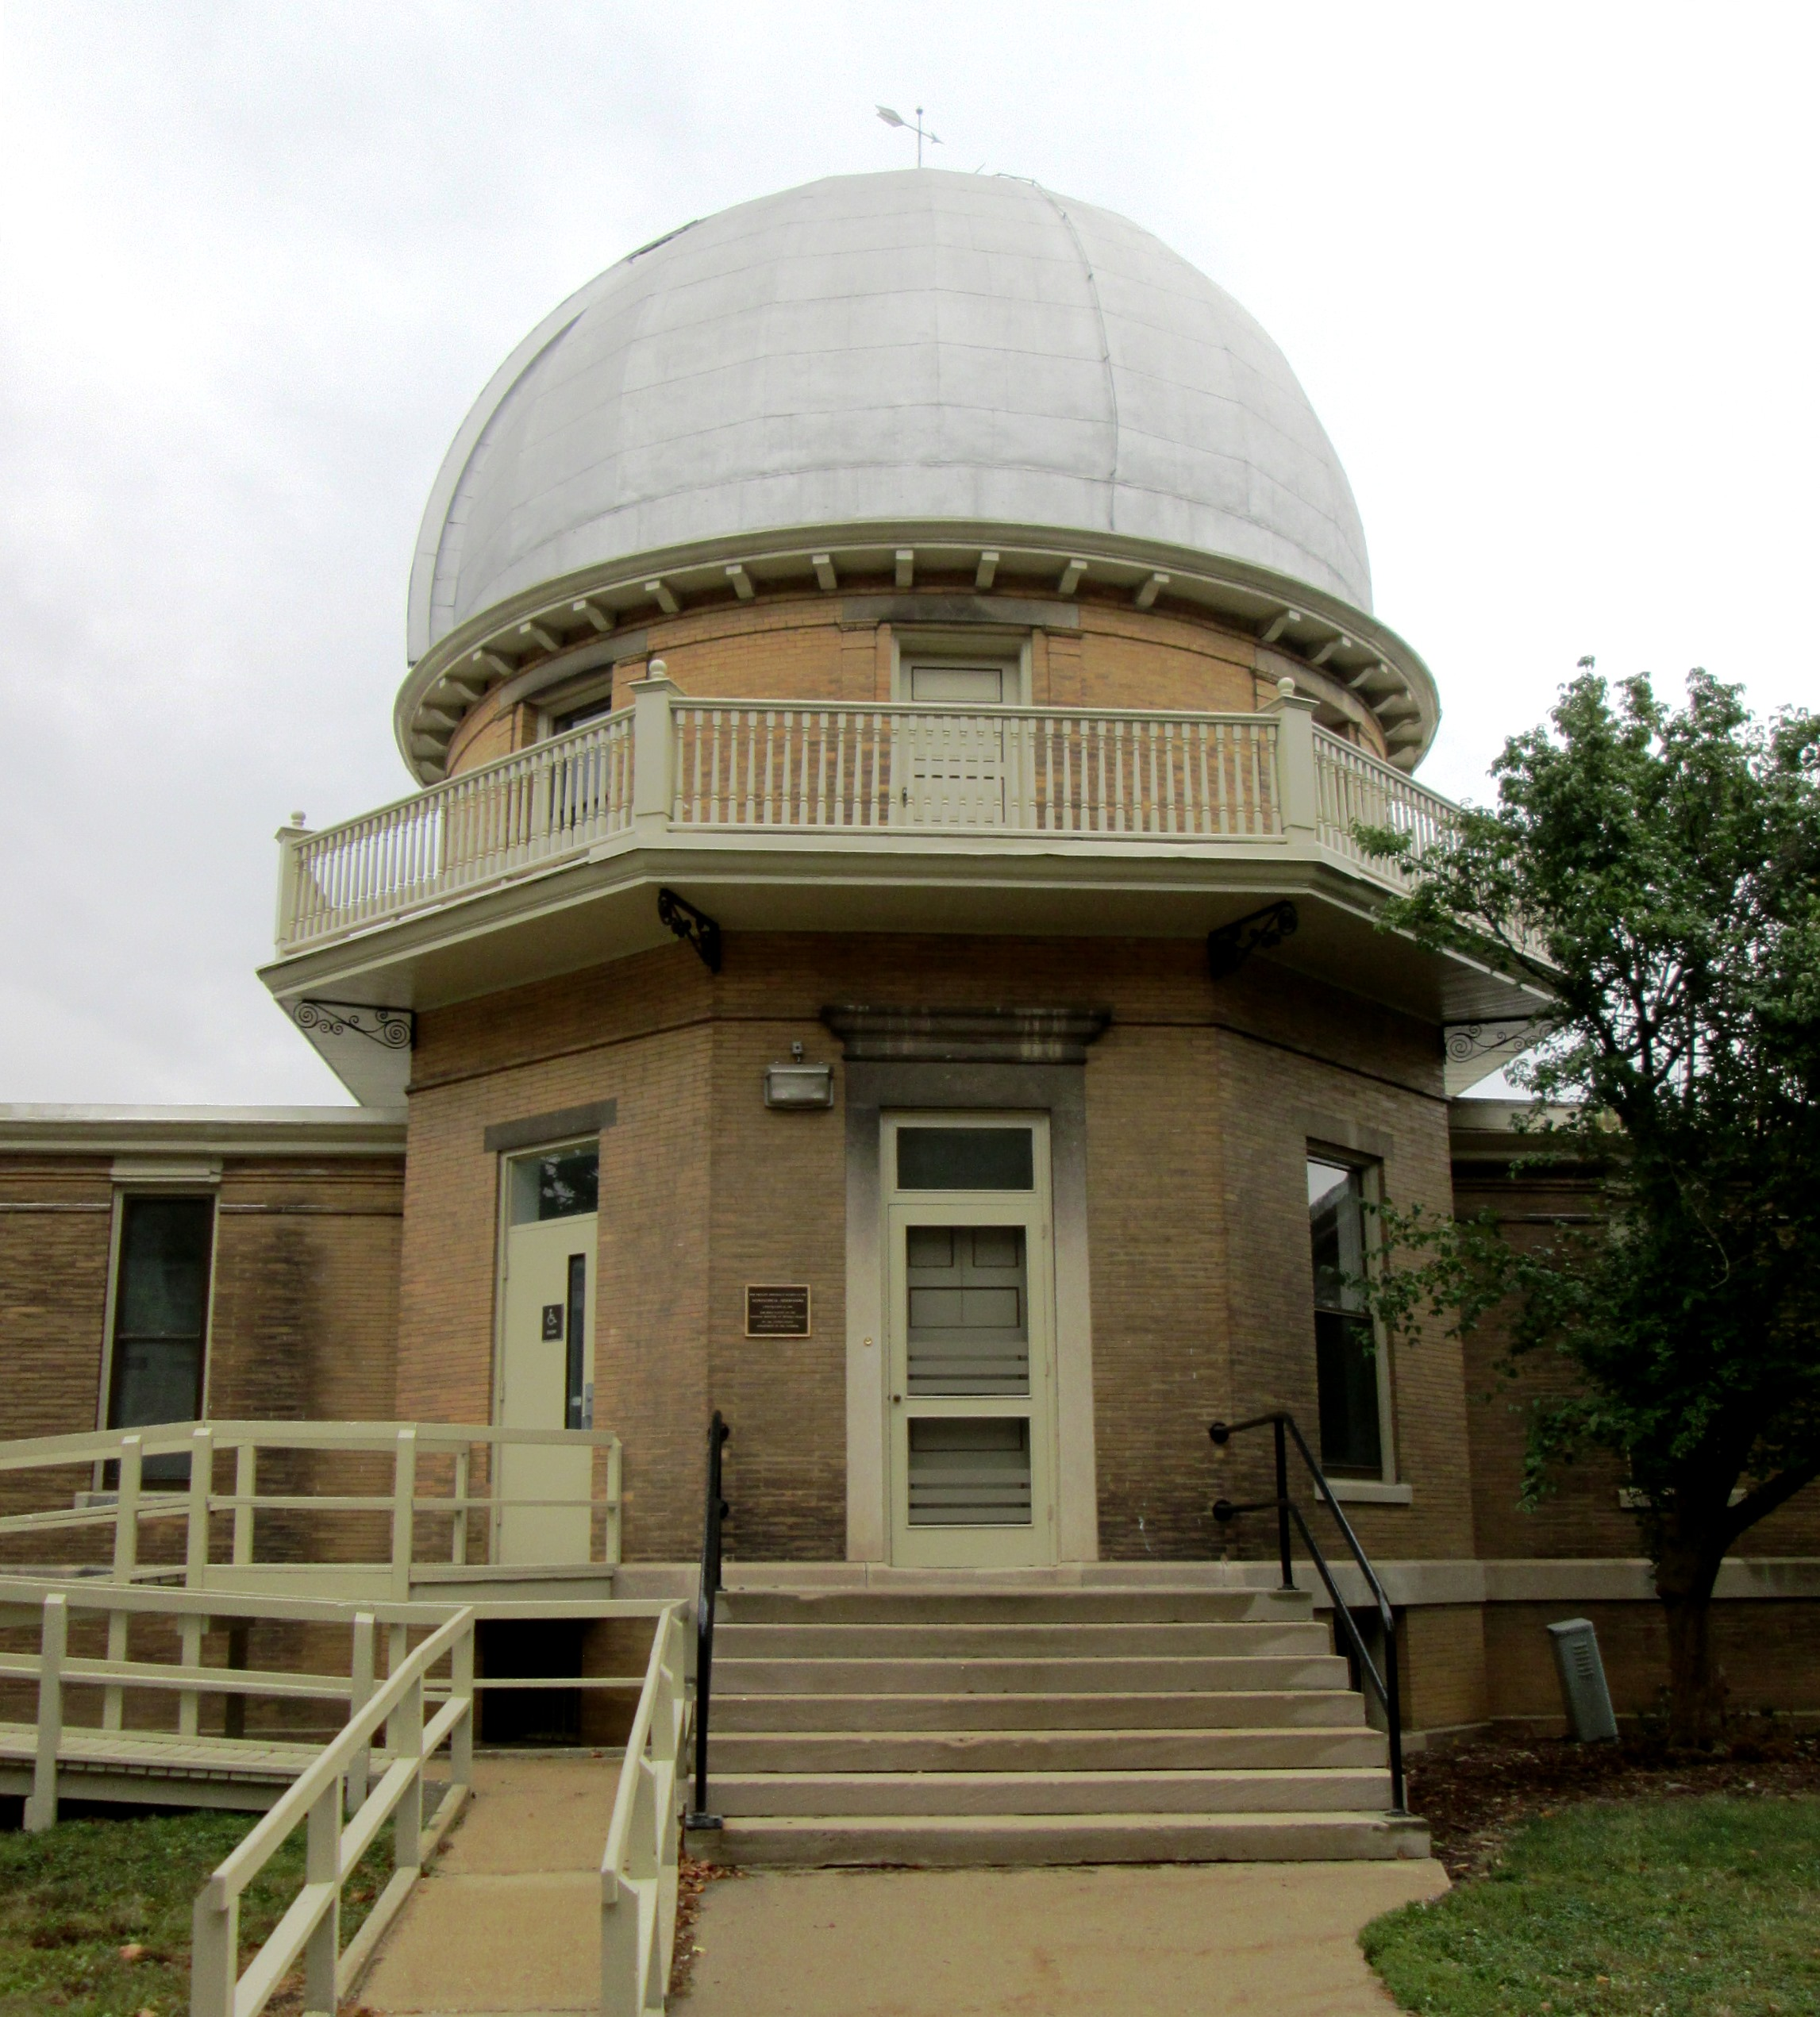 This Colonial Revival-style observatory was built in 1896 and renovated in 1956, 1966, and 1996.